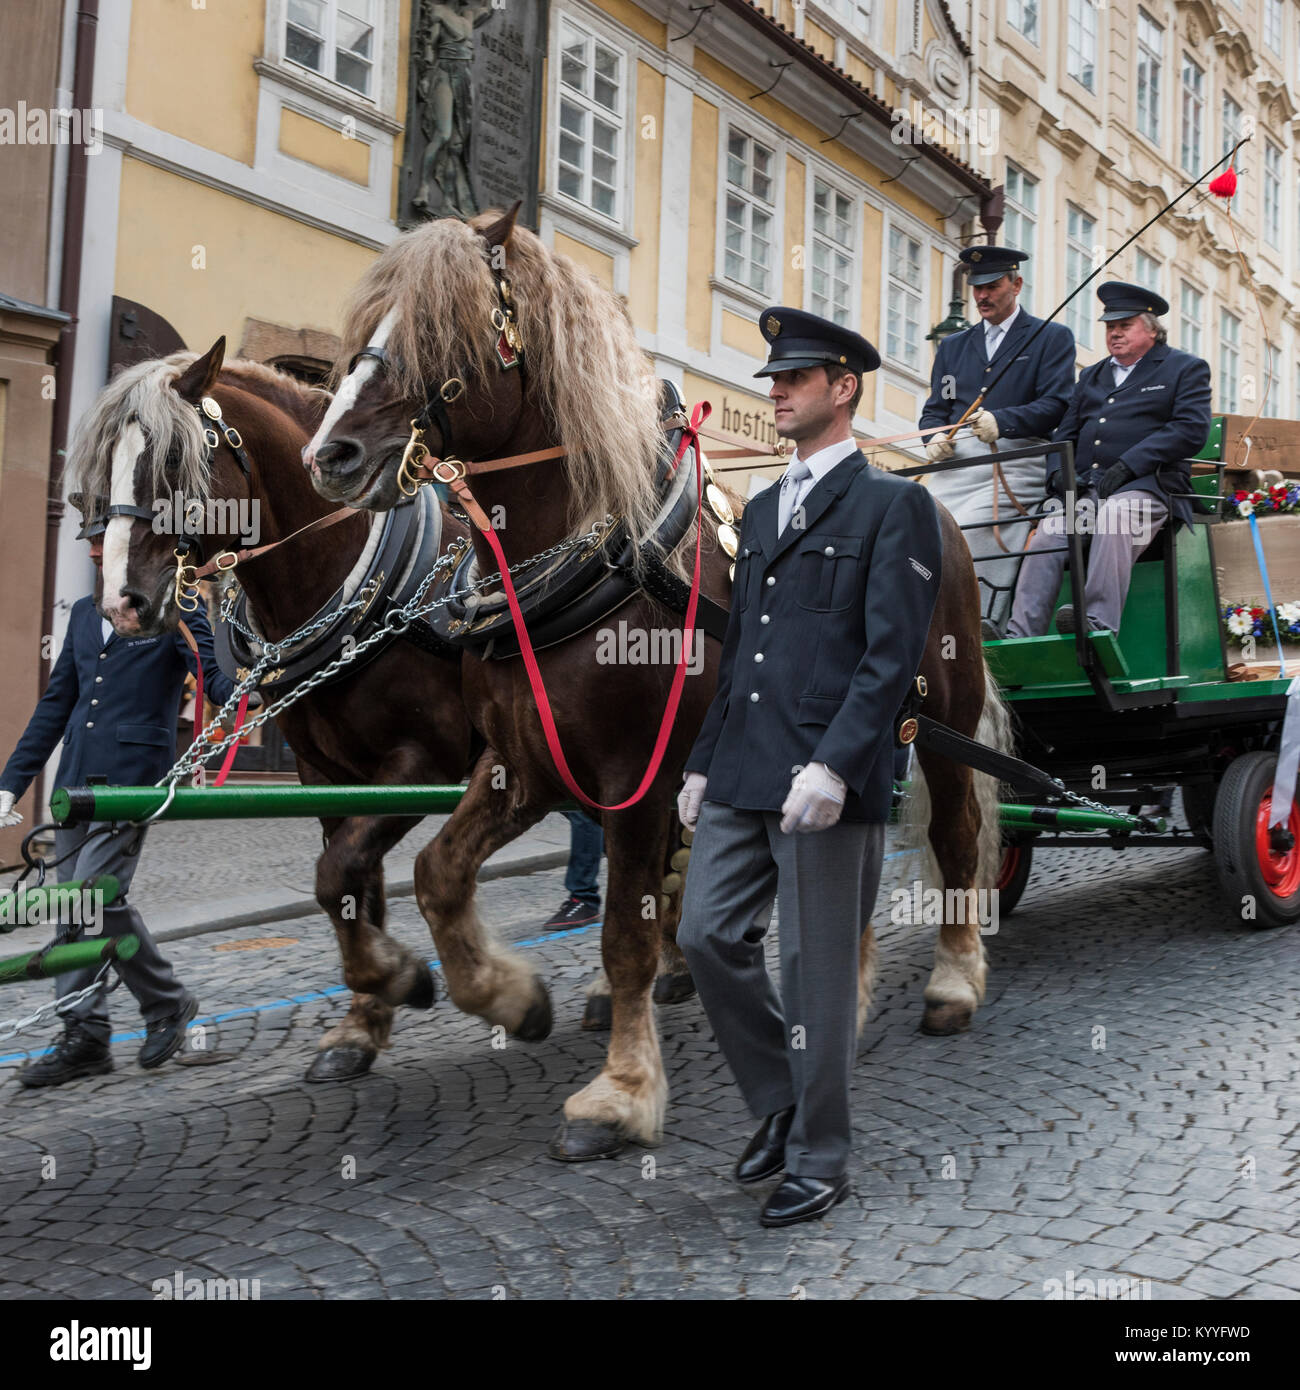 Security officials with horse cart on street, Lesser Town, Prague, Czech Republic - Stock Image